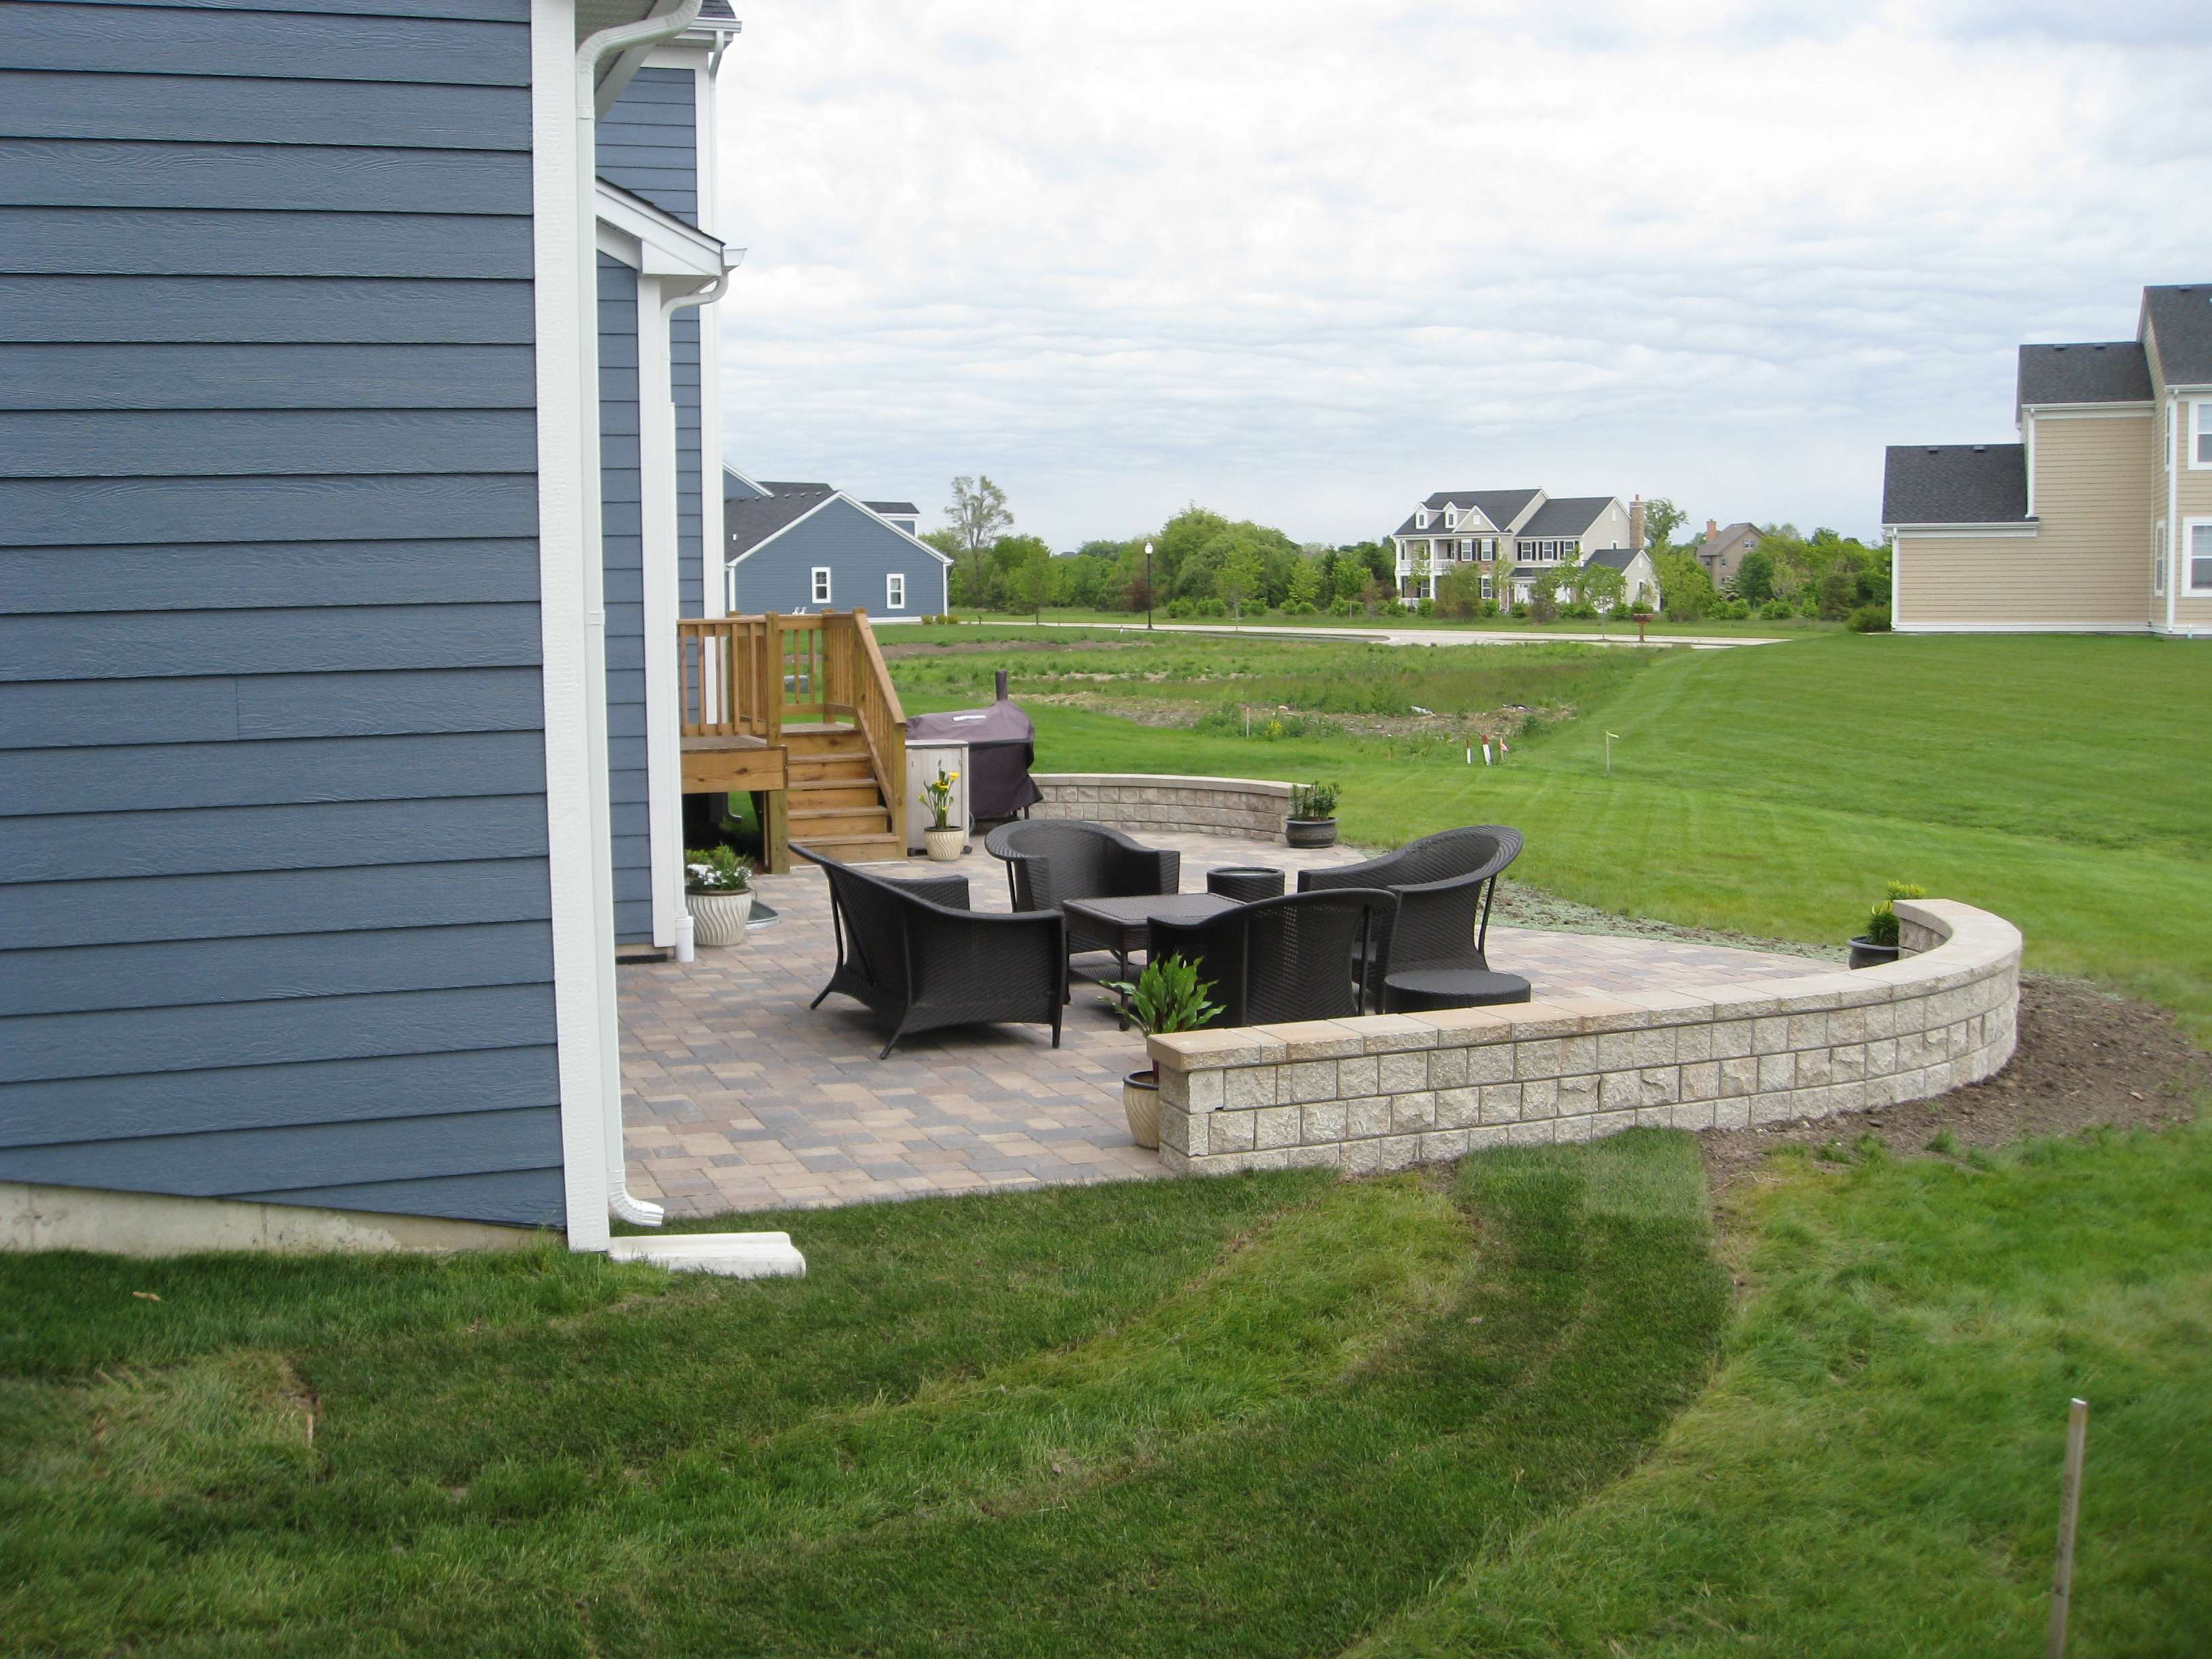 Brick Paver Patio With Seatwall